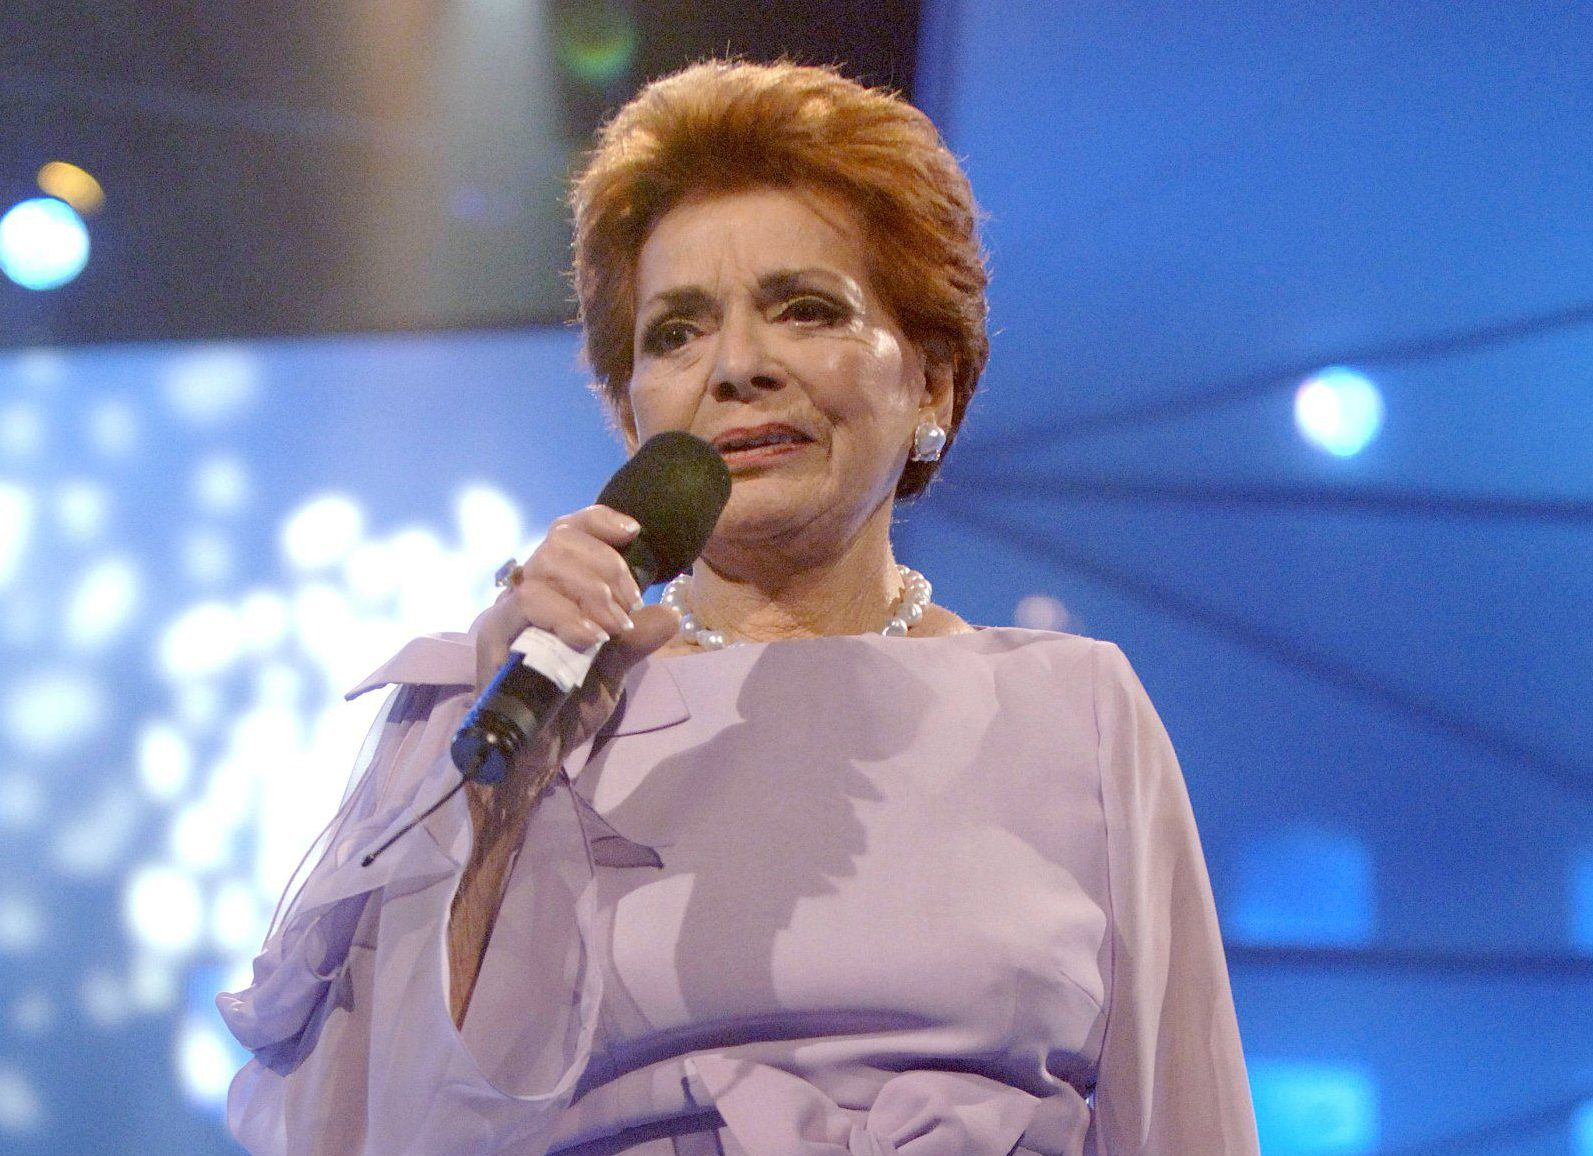 Mandatory Credit: Photo by Birger Vogelius/REX/Shutterstock (557674m) Lys Assia CONGRATULATIONS ANNIVERSARY SHOW FOR THE EUROVISION SONG CONTEST, COPENHAGEN, DENMARK - 22 OCT 2005